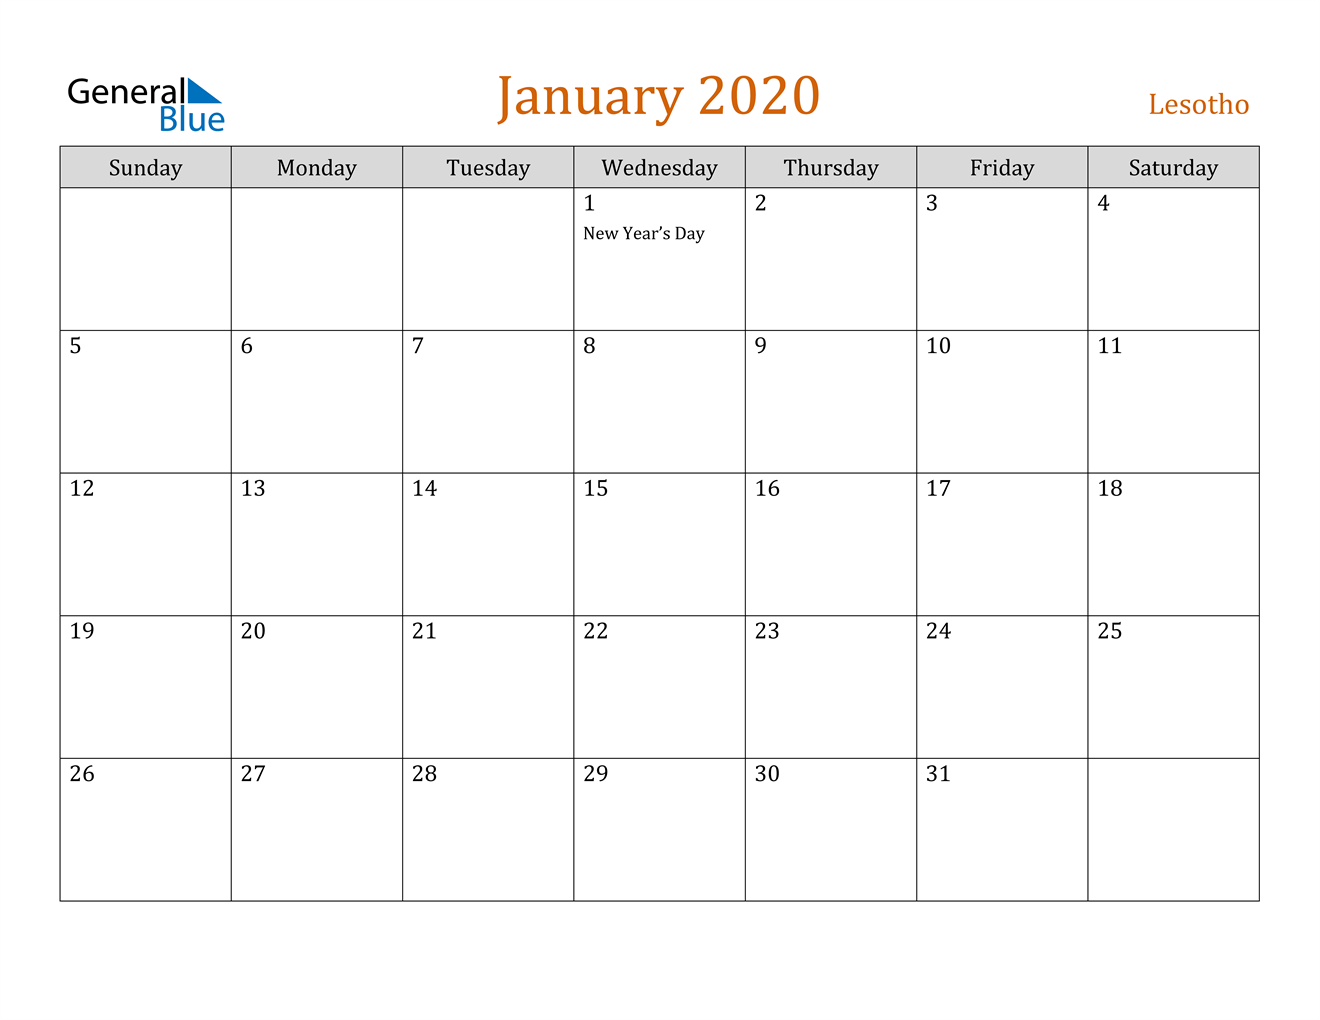 Image of January 2020 Contemporary Orange PDF, Word and Excel Calendar Calendar